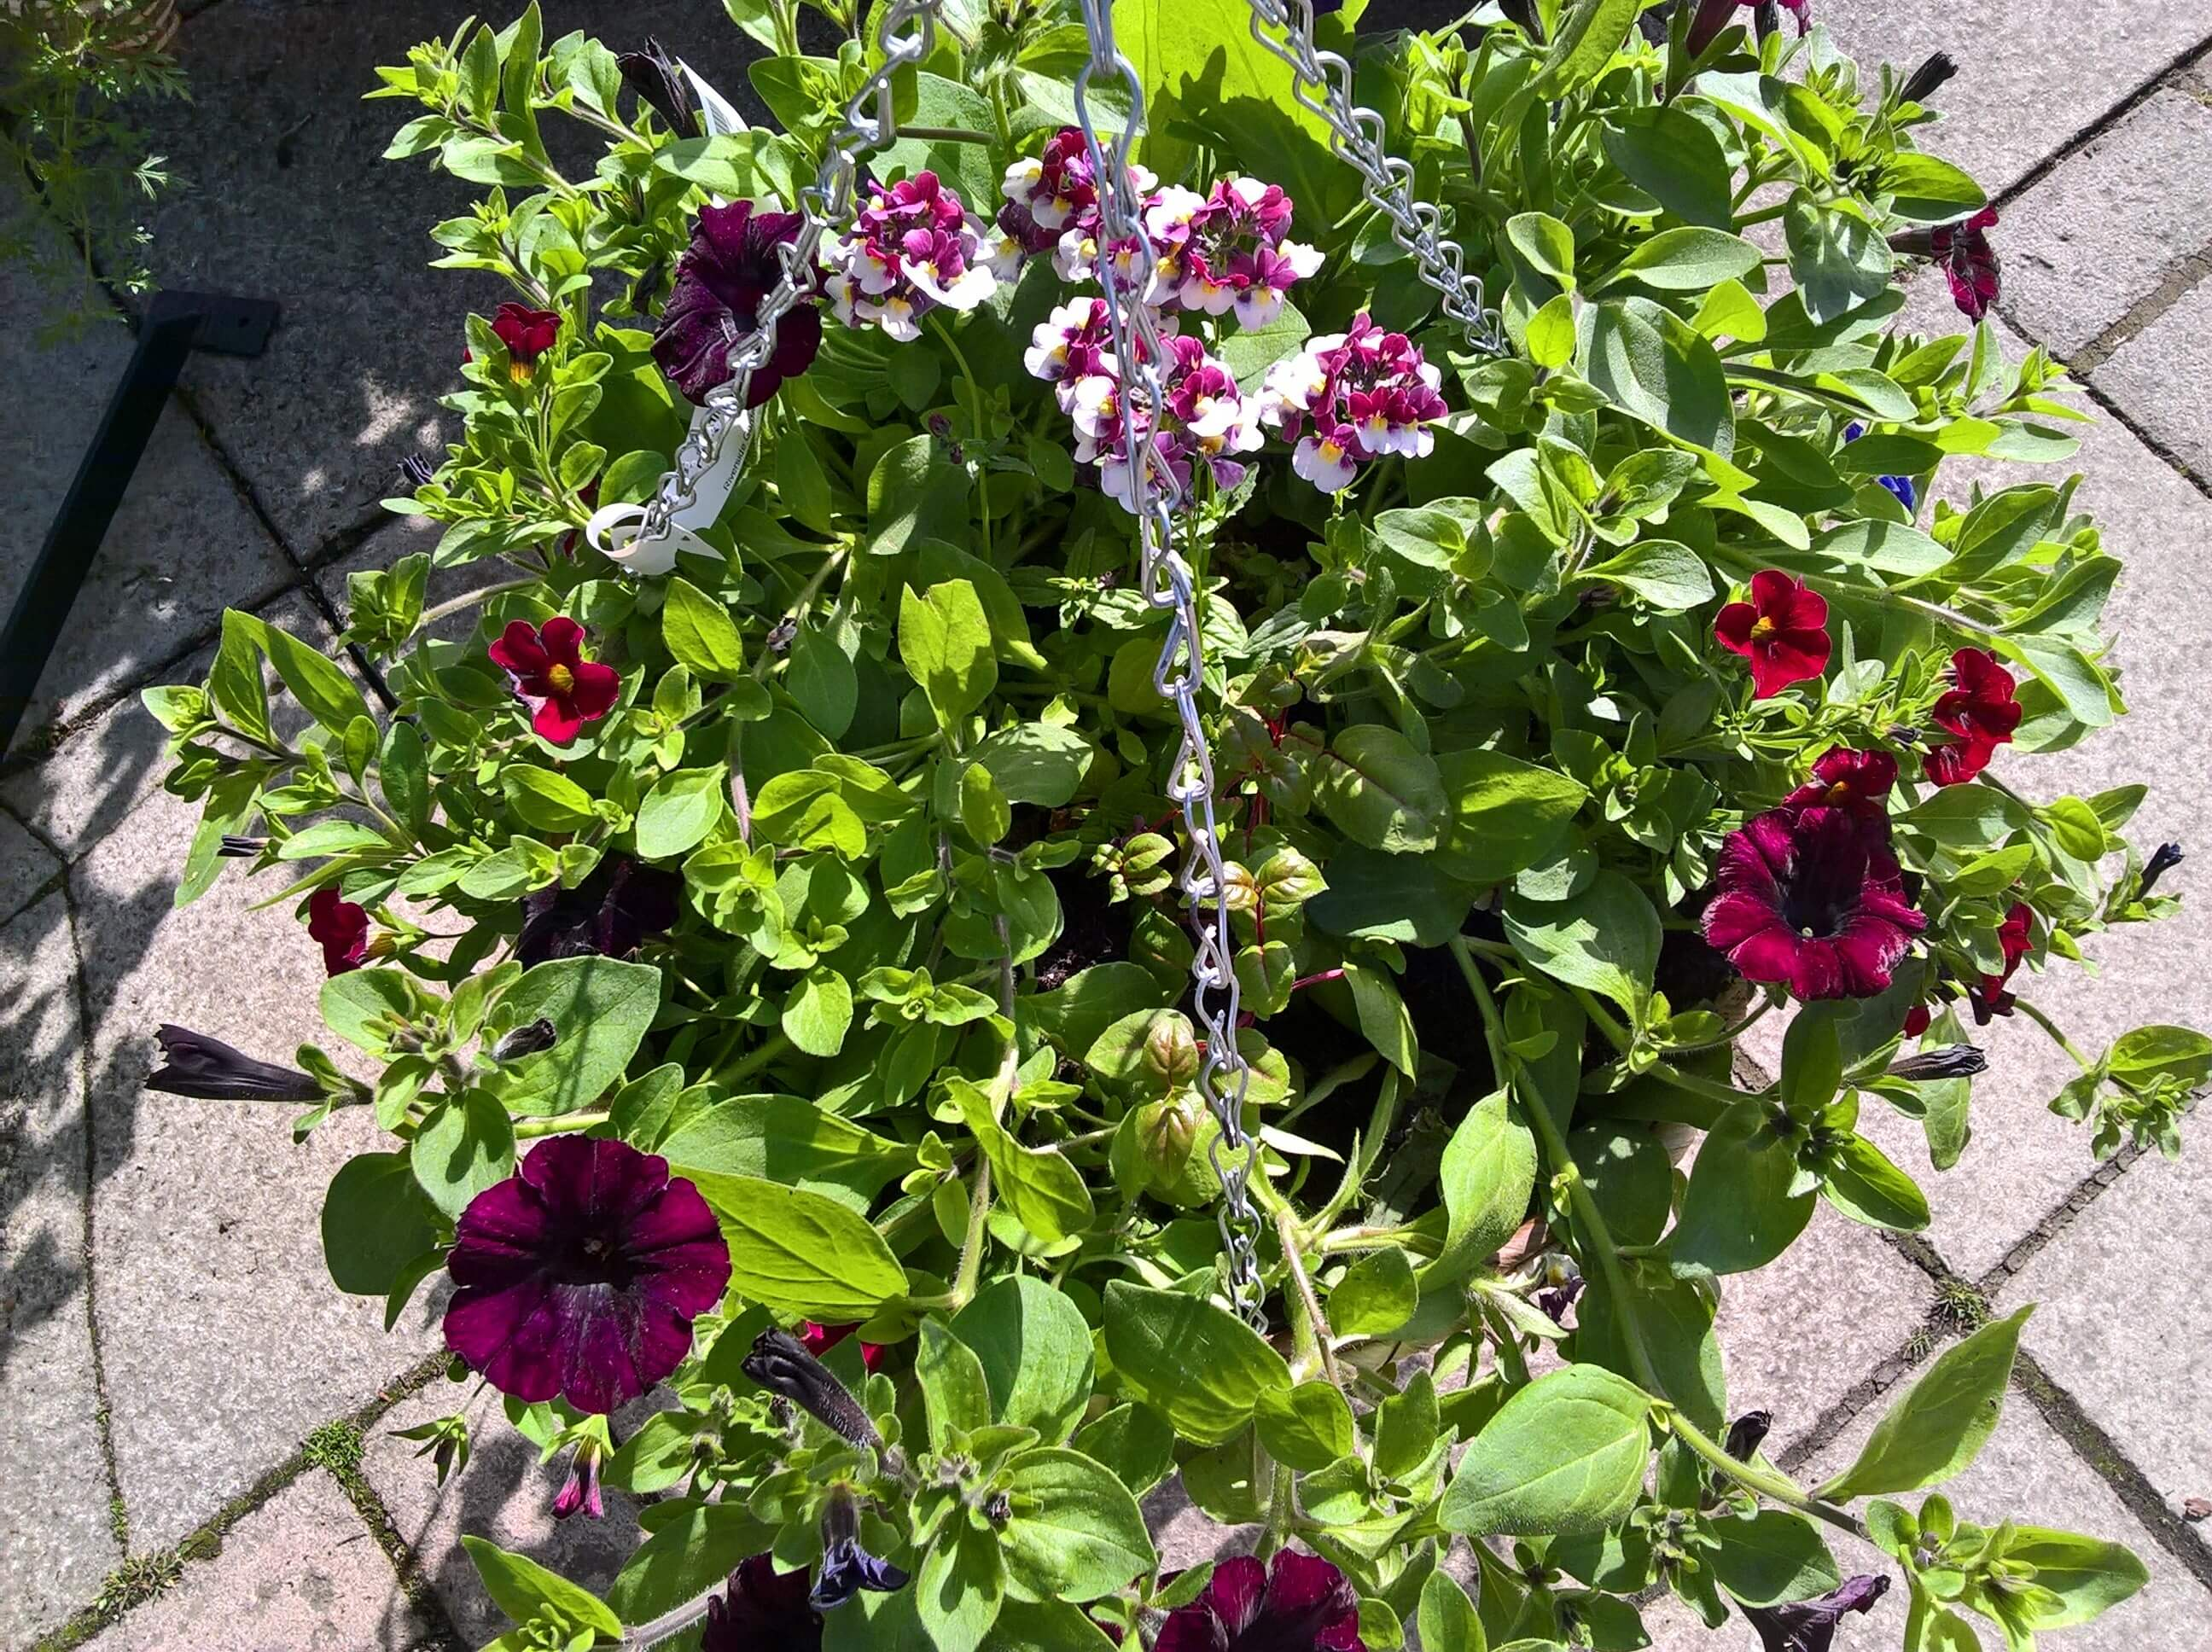 Hanging baskets are ready